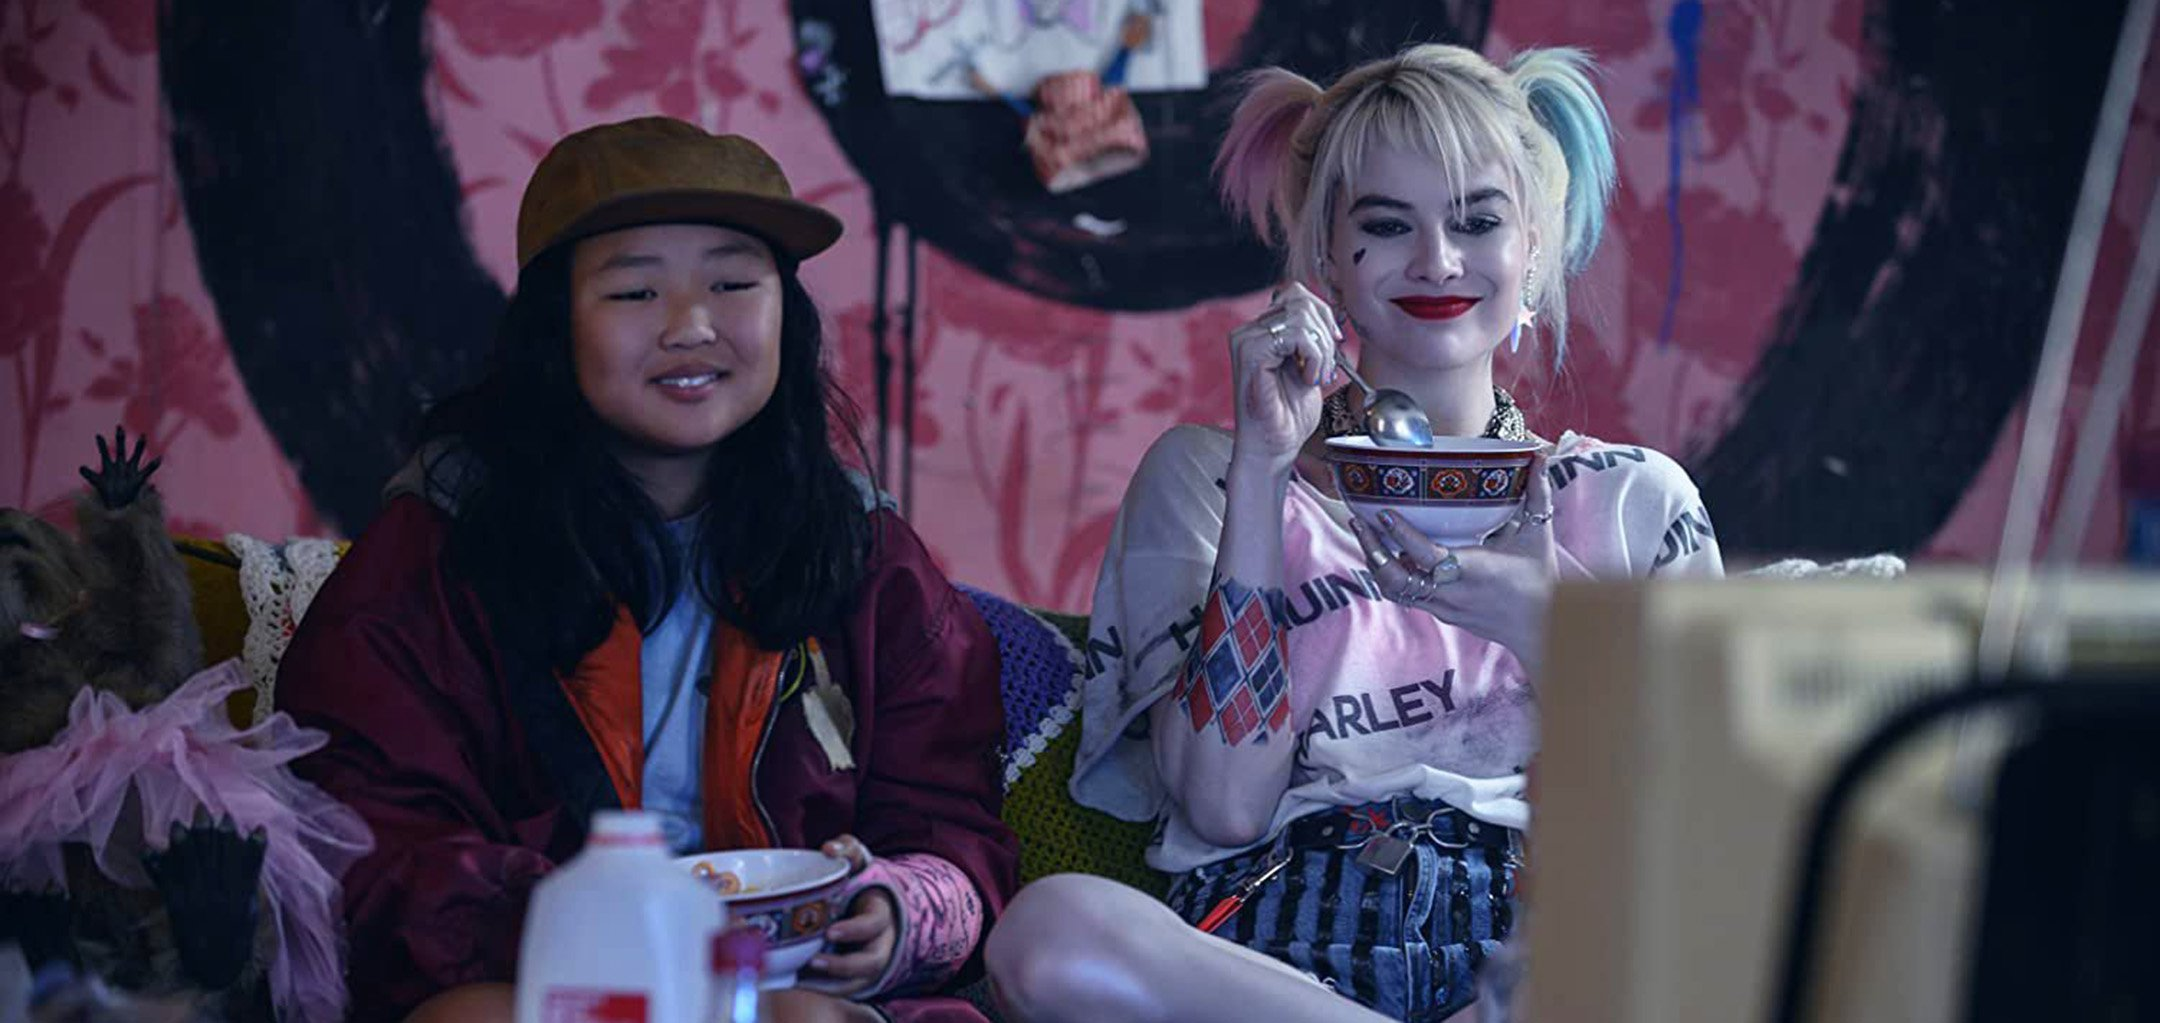 Hero image - Ella Joy Basco and Margot Robbie in Birds of Prey